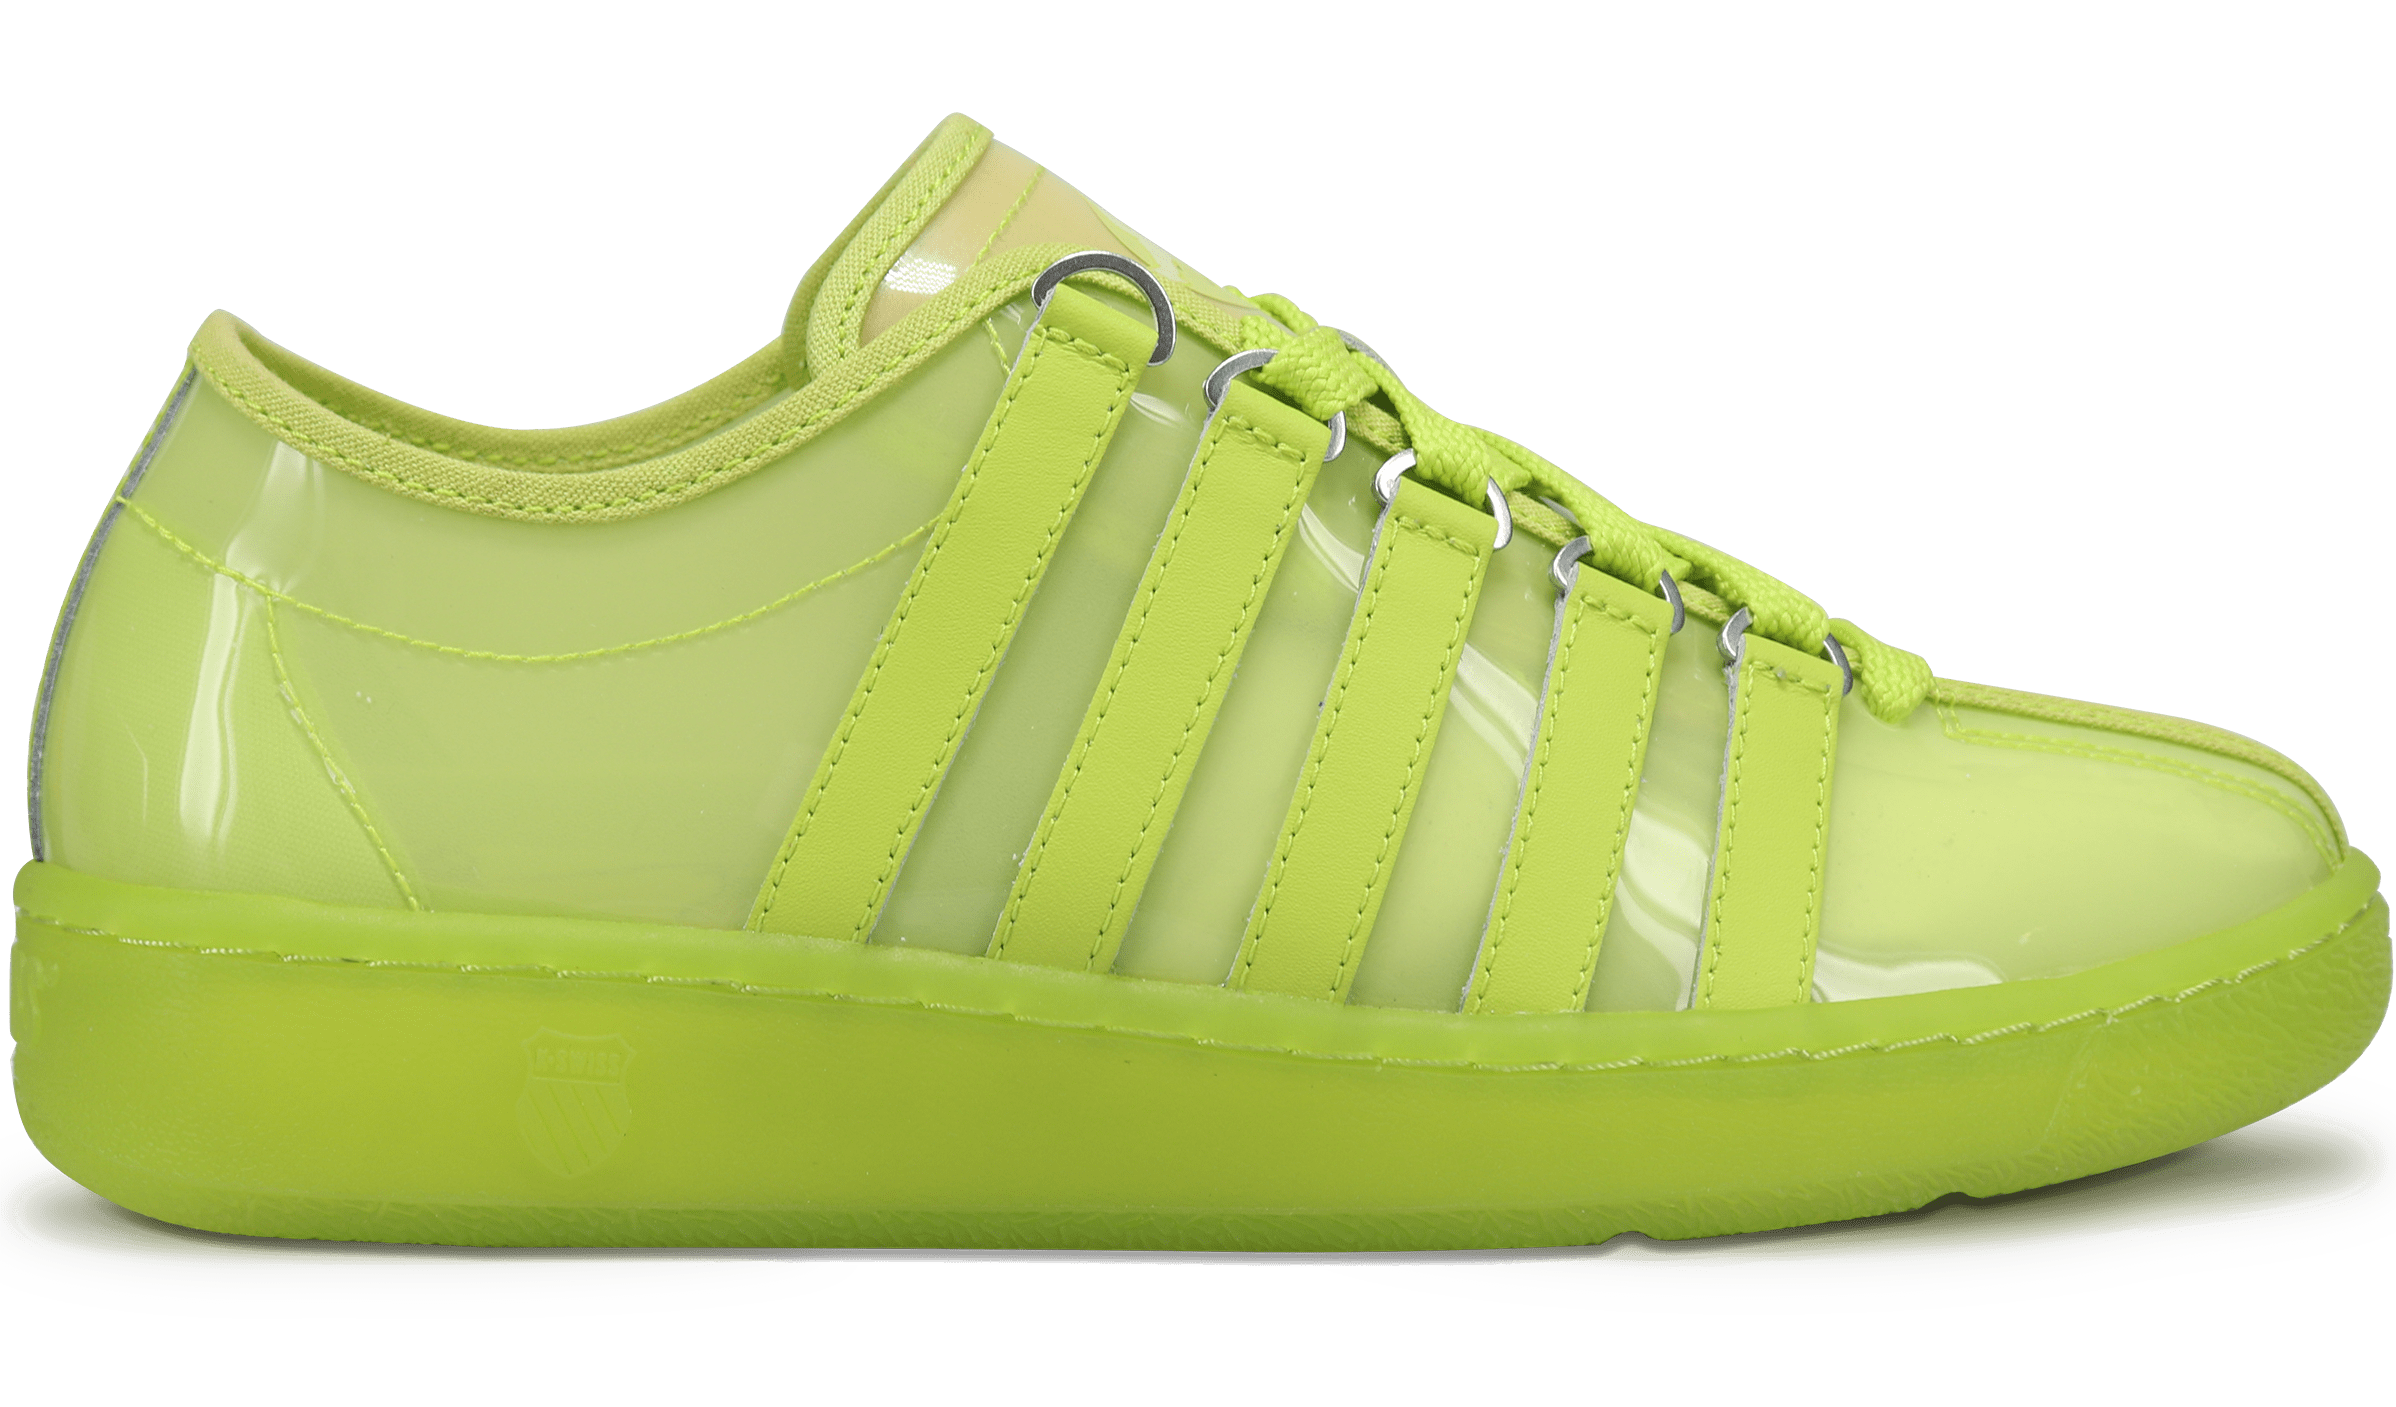 K-Swiss x Ghostbusters Classic 2000 'Slimer' 06619-305 (Lateral)